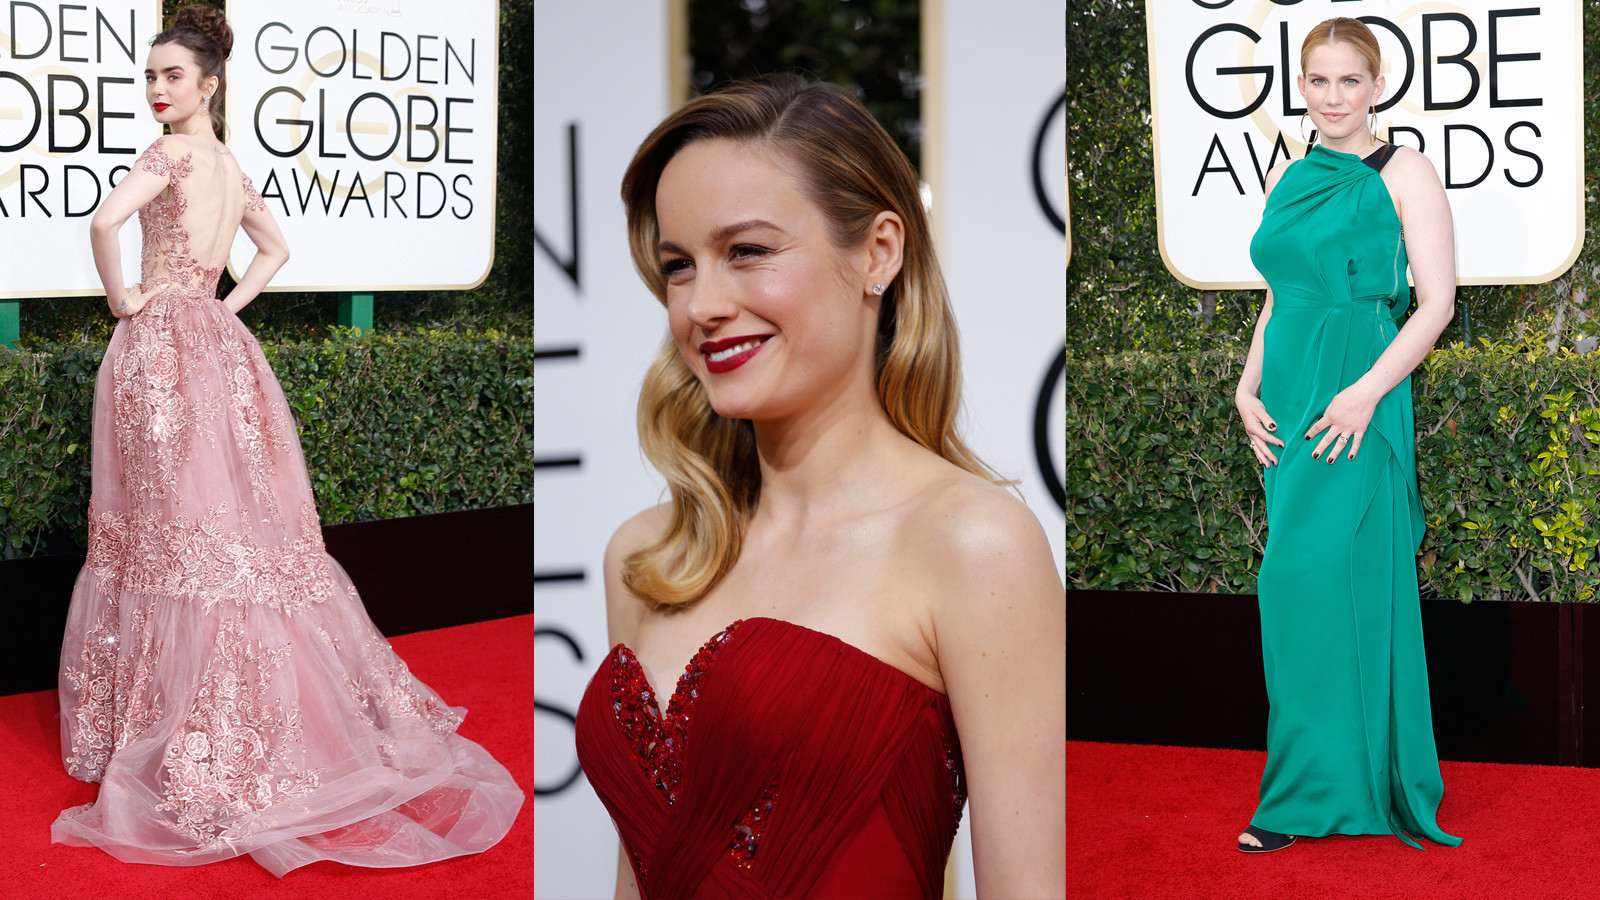 The Best and Worst of the Golden Globes 85